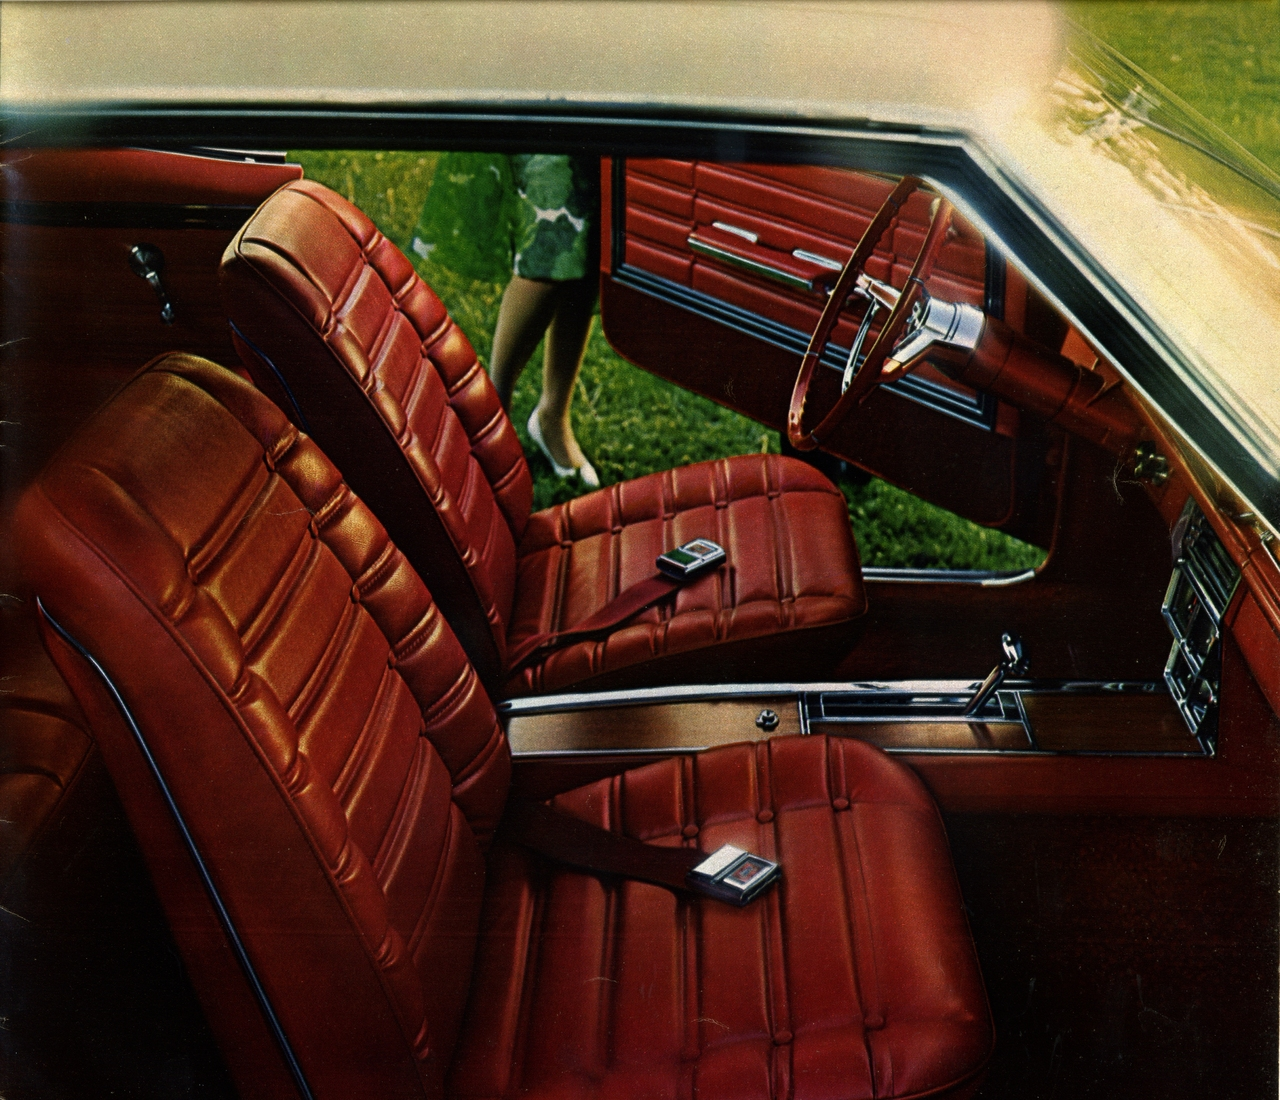 1966 chevrolet caprice interior photo picture. Black Bedroom Furniture Sets. Home Design Ideas